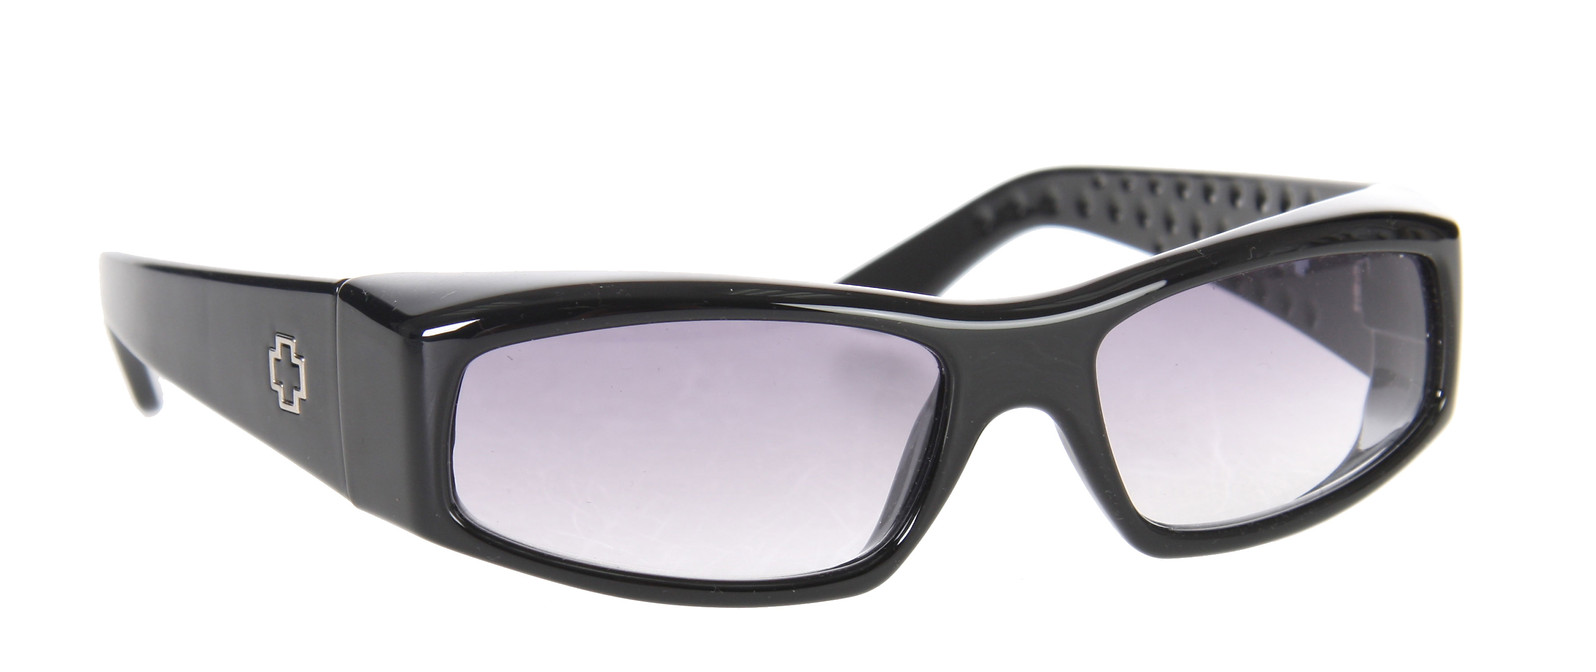 aa6a50cbeec6 Spy Optic Spy Mc Sunglasses Black Black Fade Lens - Reviews ...